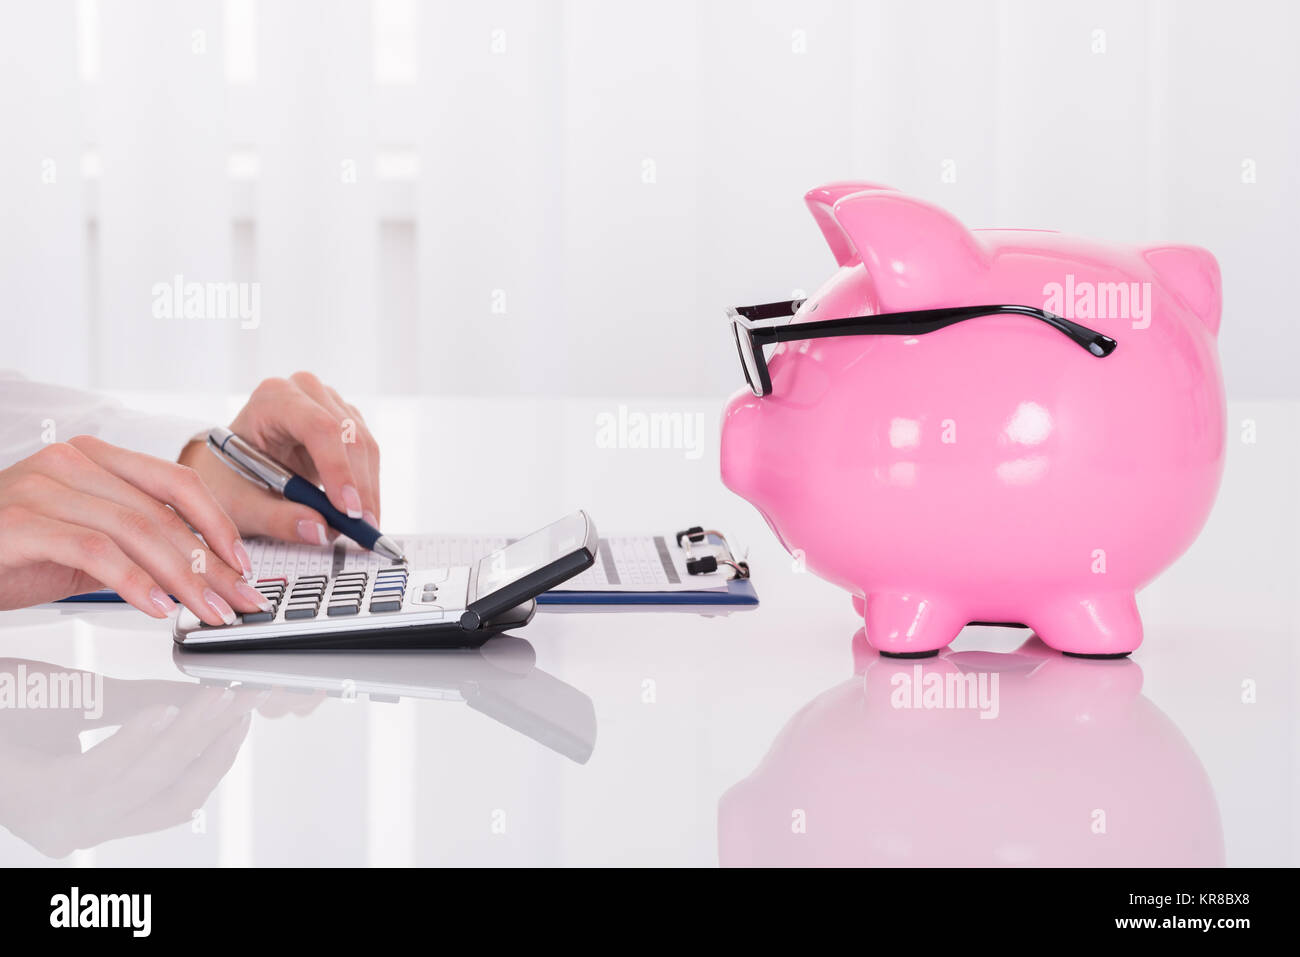 Sample Invoice Stock Photos   Sample Invoice Stock Images   Alamy Person Calculating Bill   Stock Image